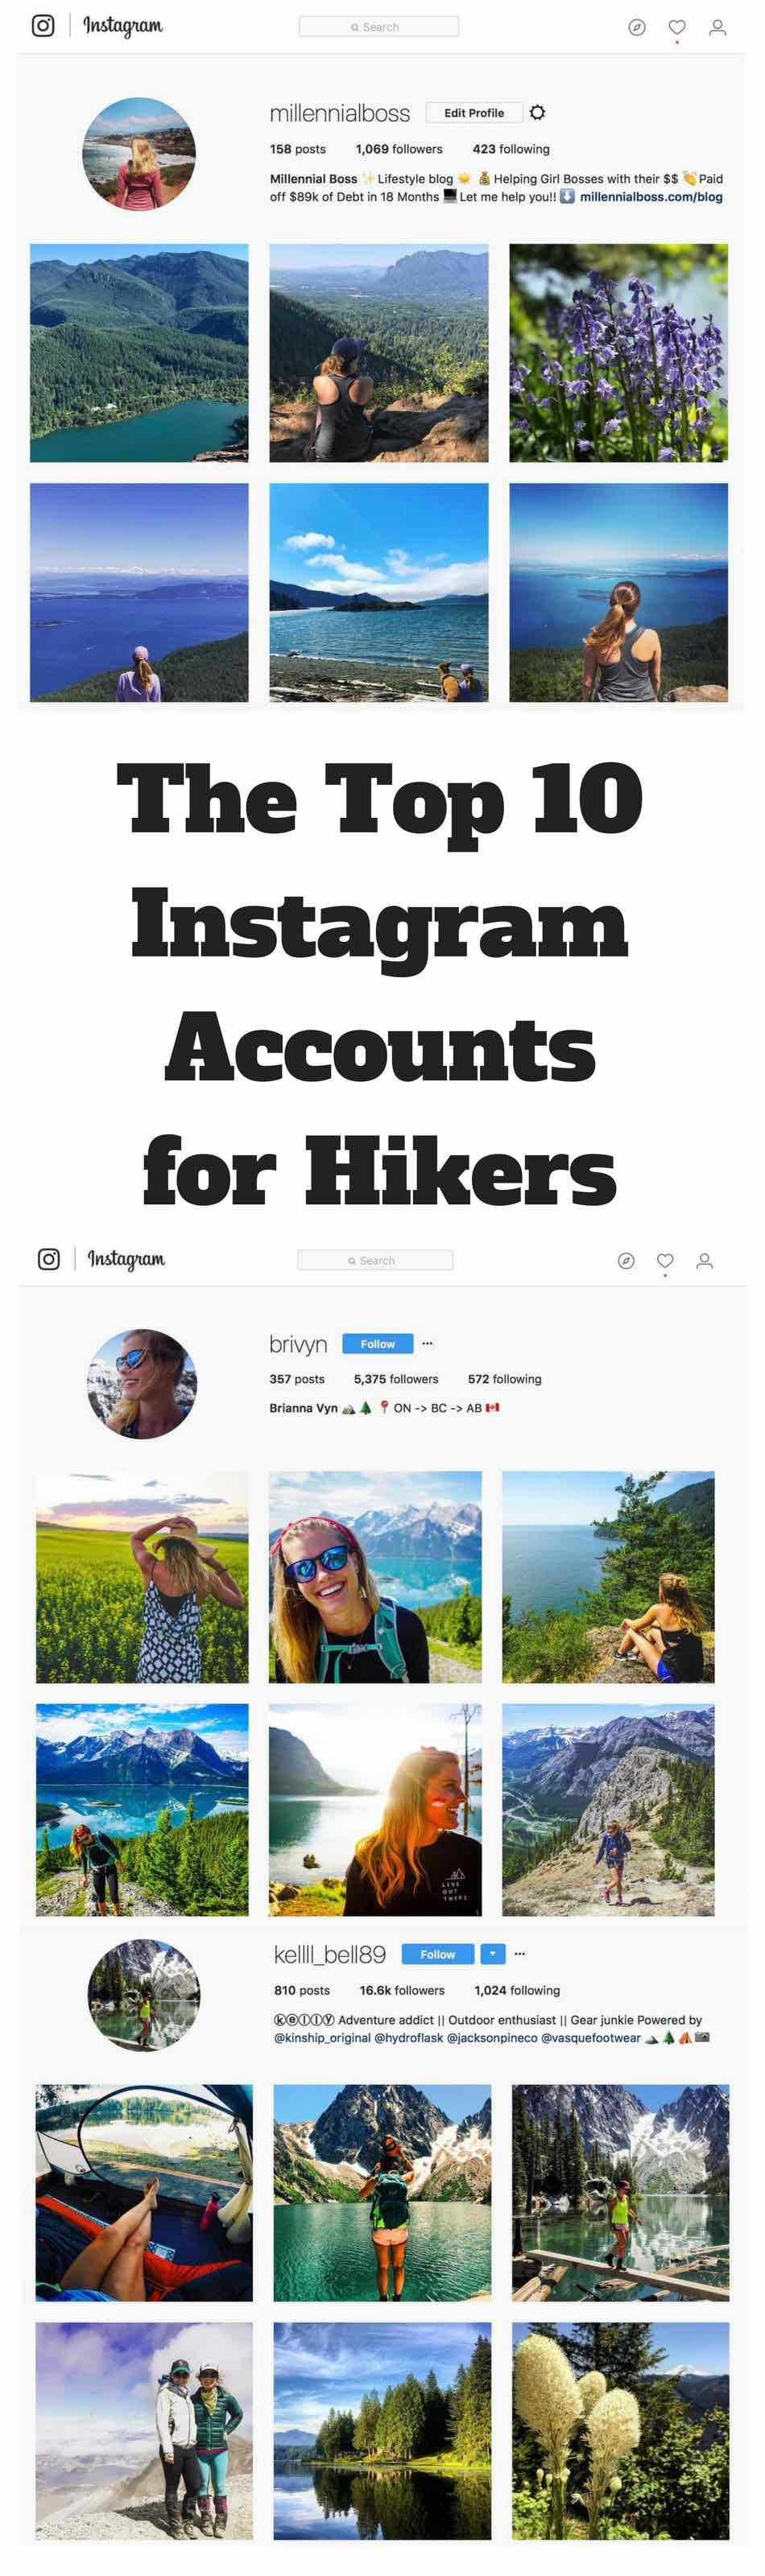 As a hiker myself, I love this list! Thanks for sharing.